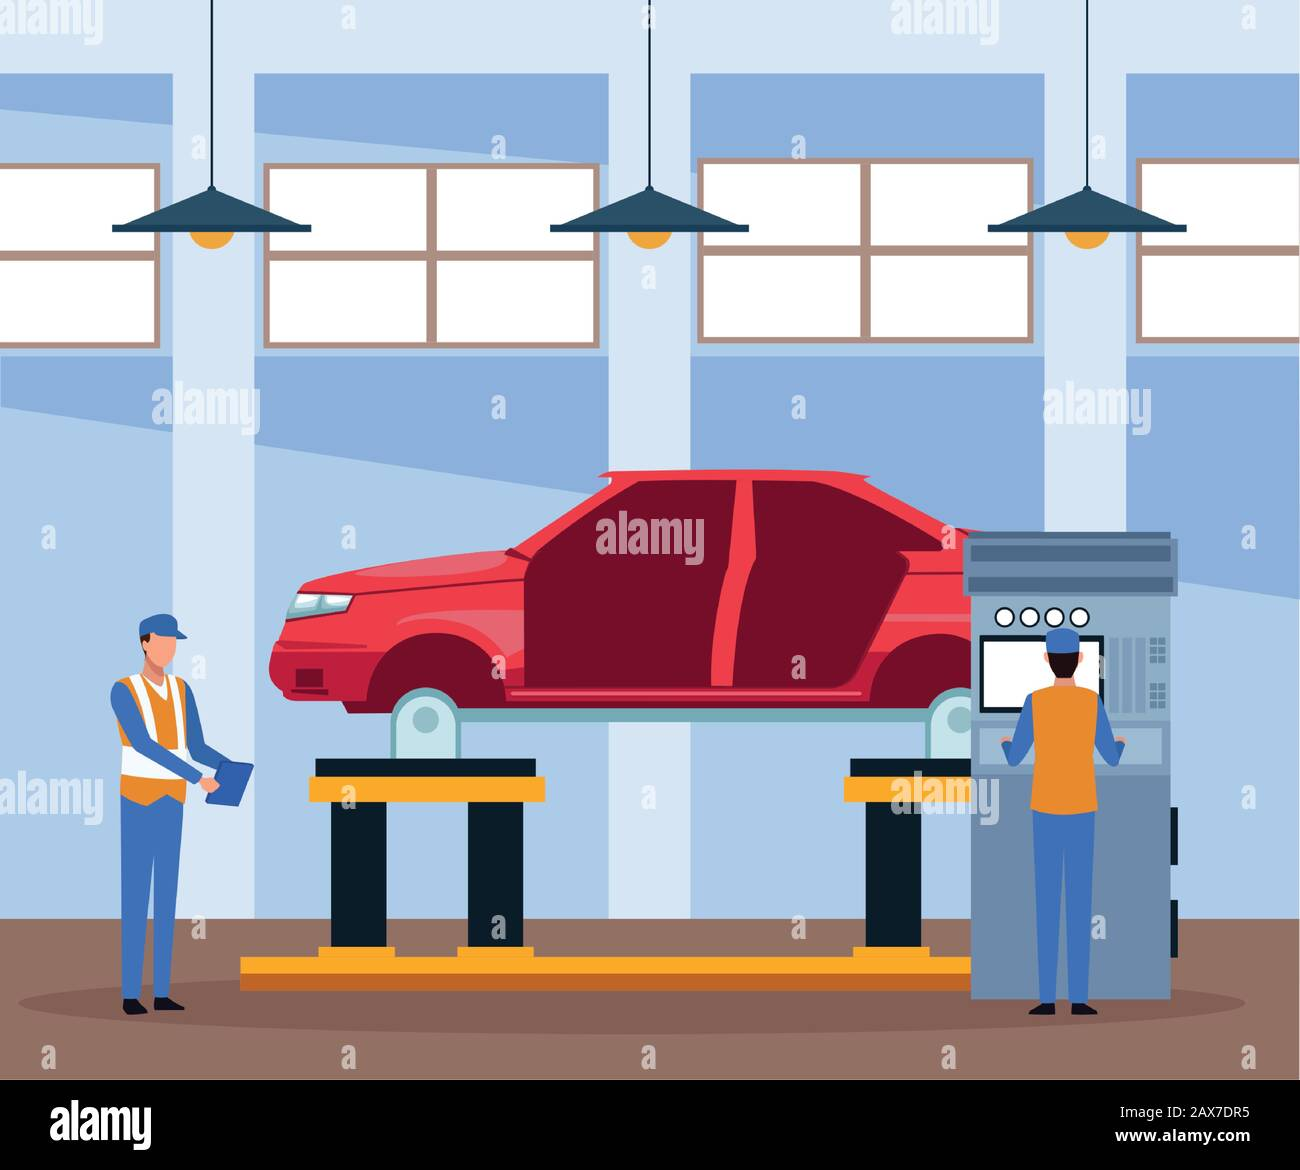 Car Repair Shop Scenery With Mechanics And Lifted Car On Machine Stock Vector Image Art Alamy